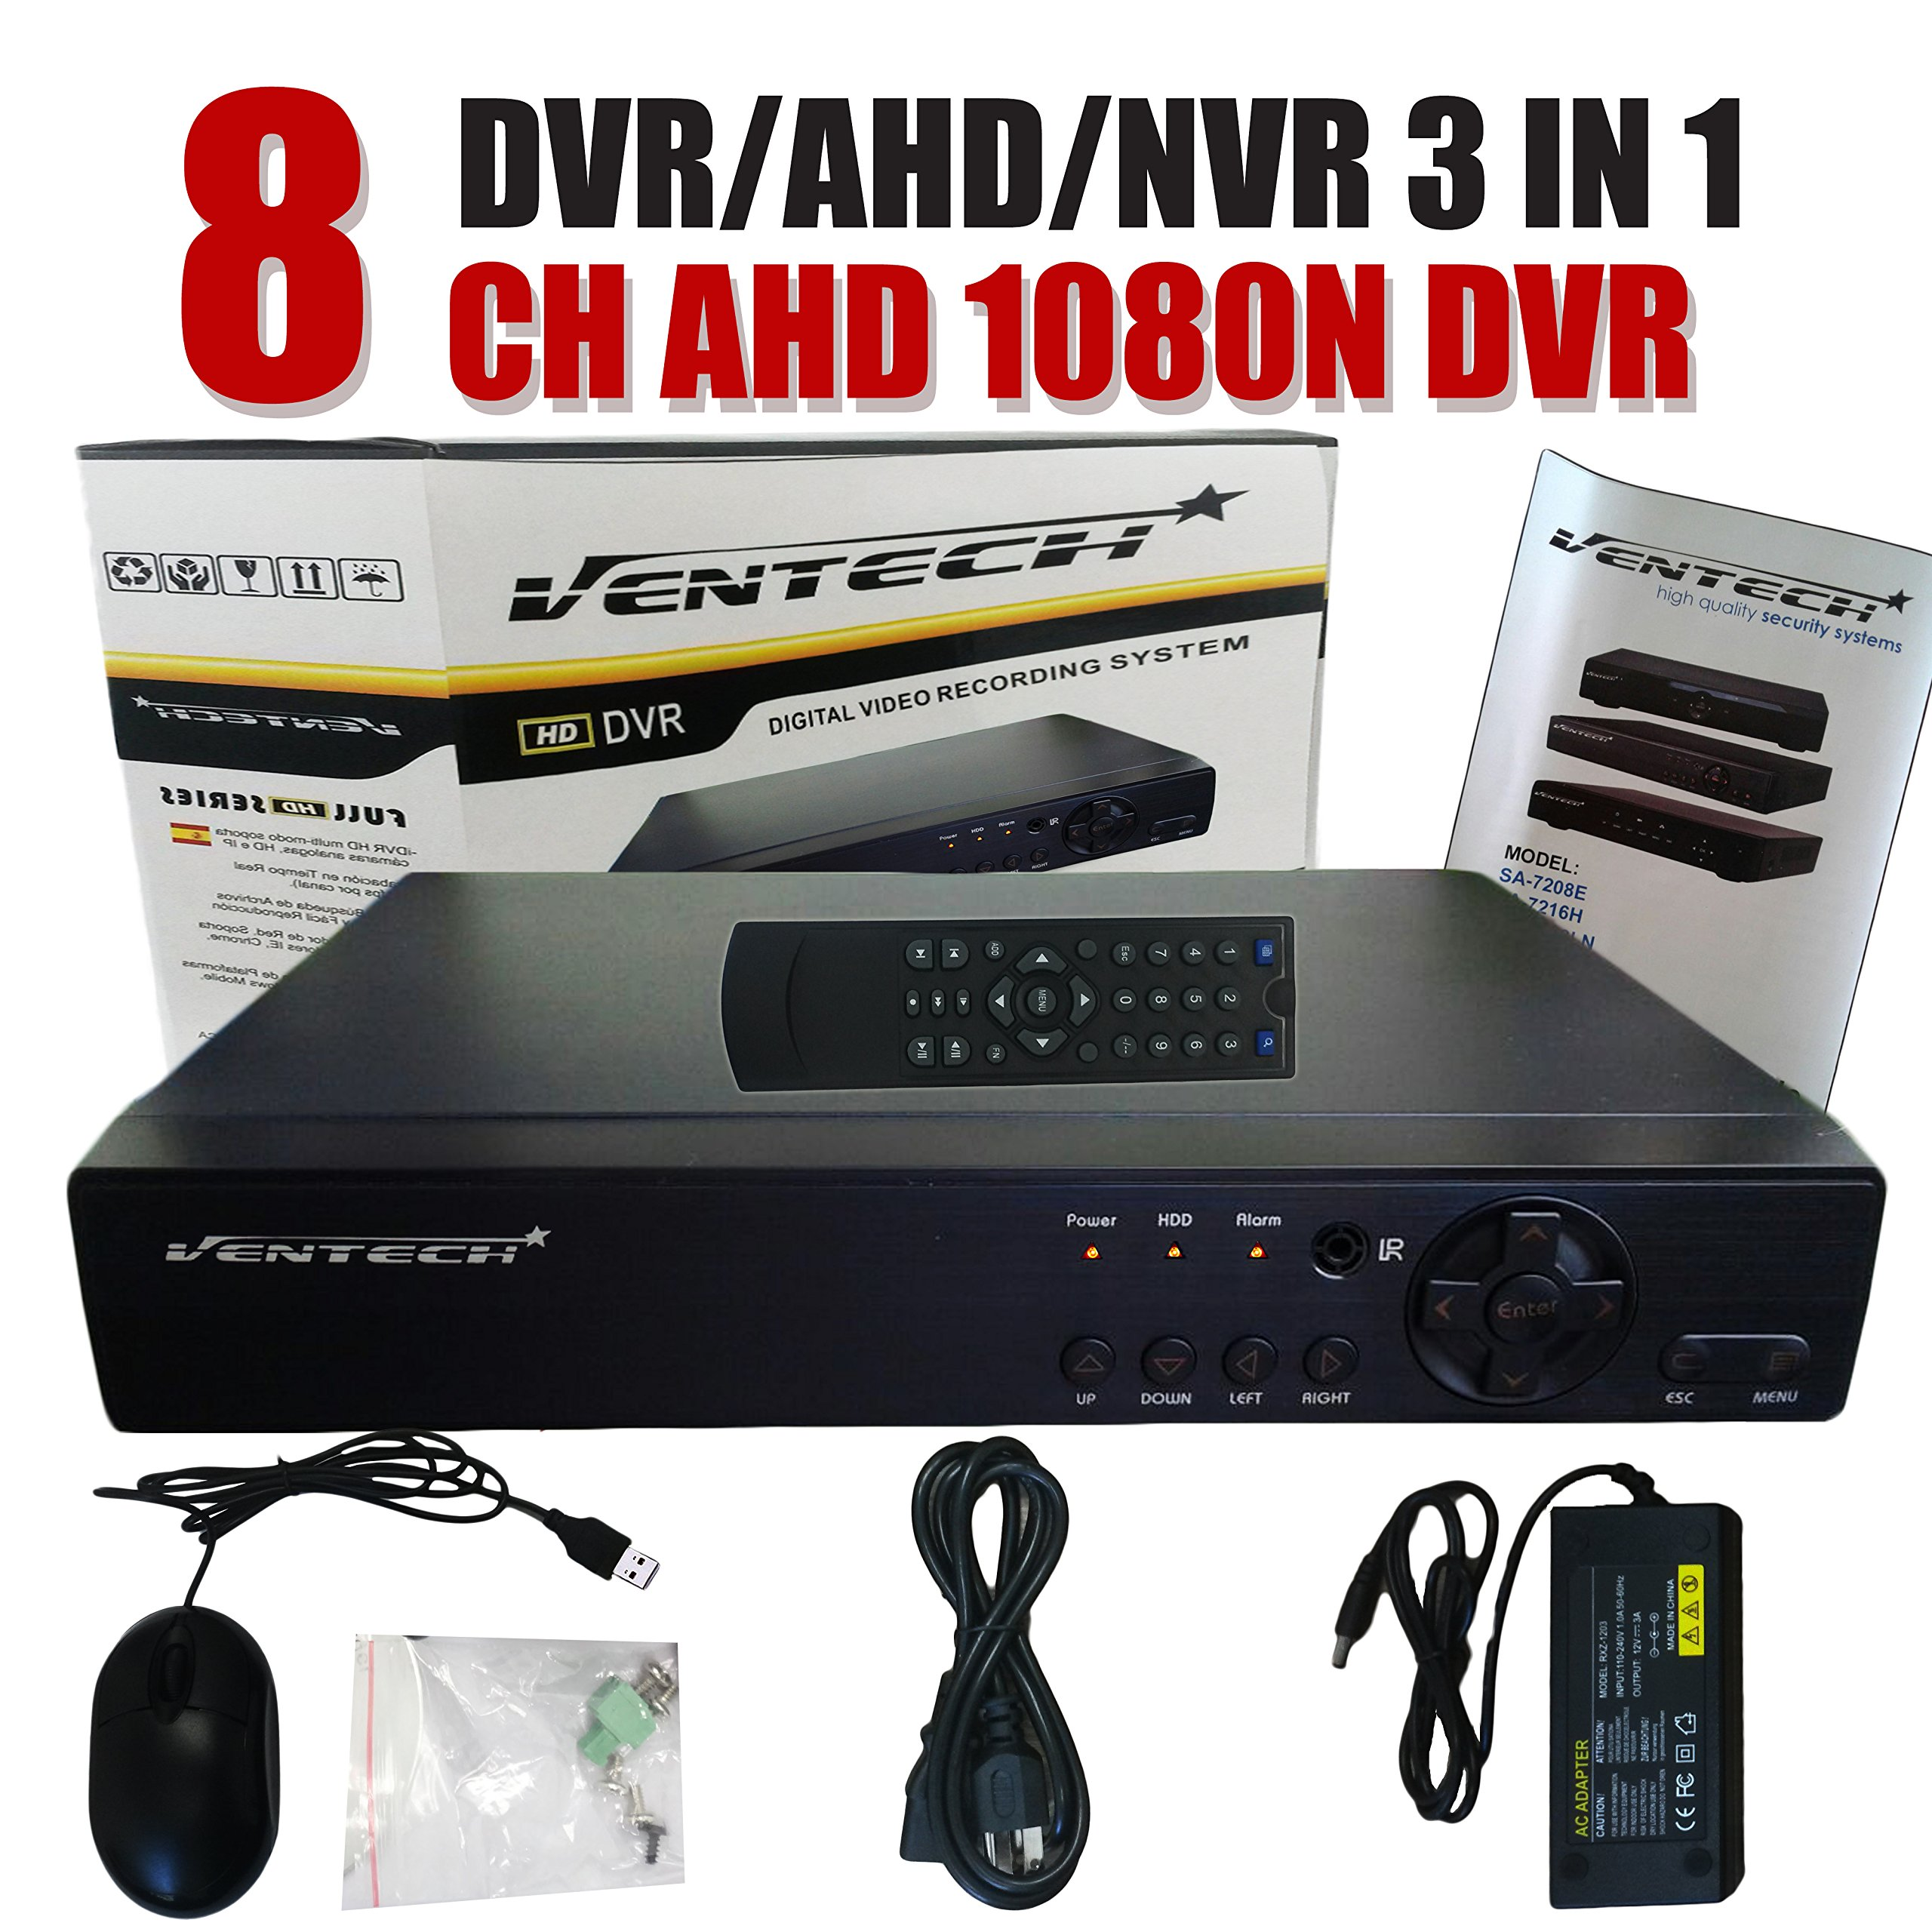 VENTECH DVR 8 Channel 1080n 3 in 1 Hybrid Surveillance recorder Security Systems HDMI Output QR Code Set Up Push Alerts on Cell Phones & Free App P2P (NO Hard Drive Included) p2p 720P 960P 1080P